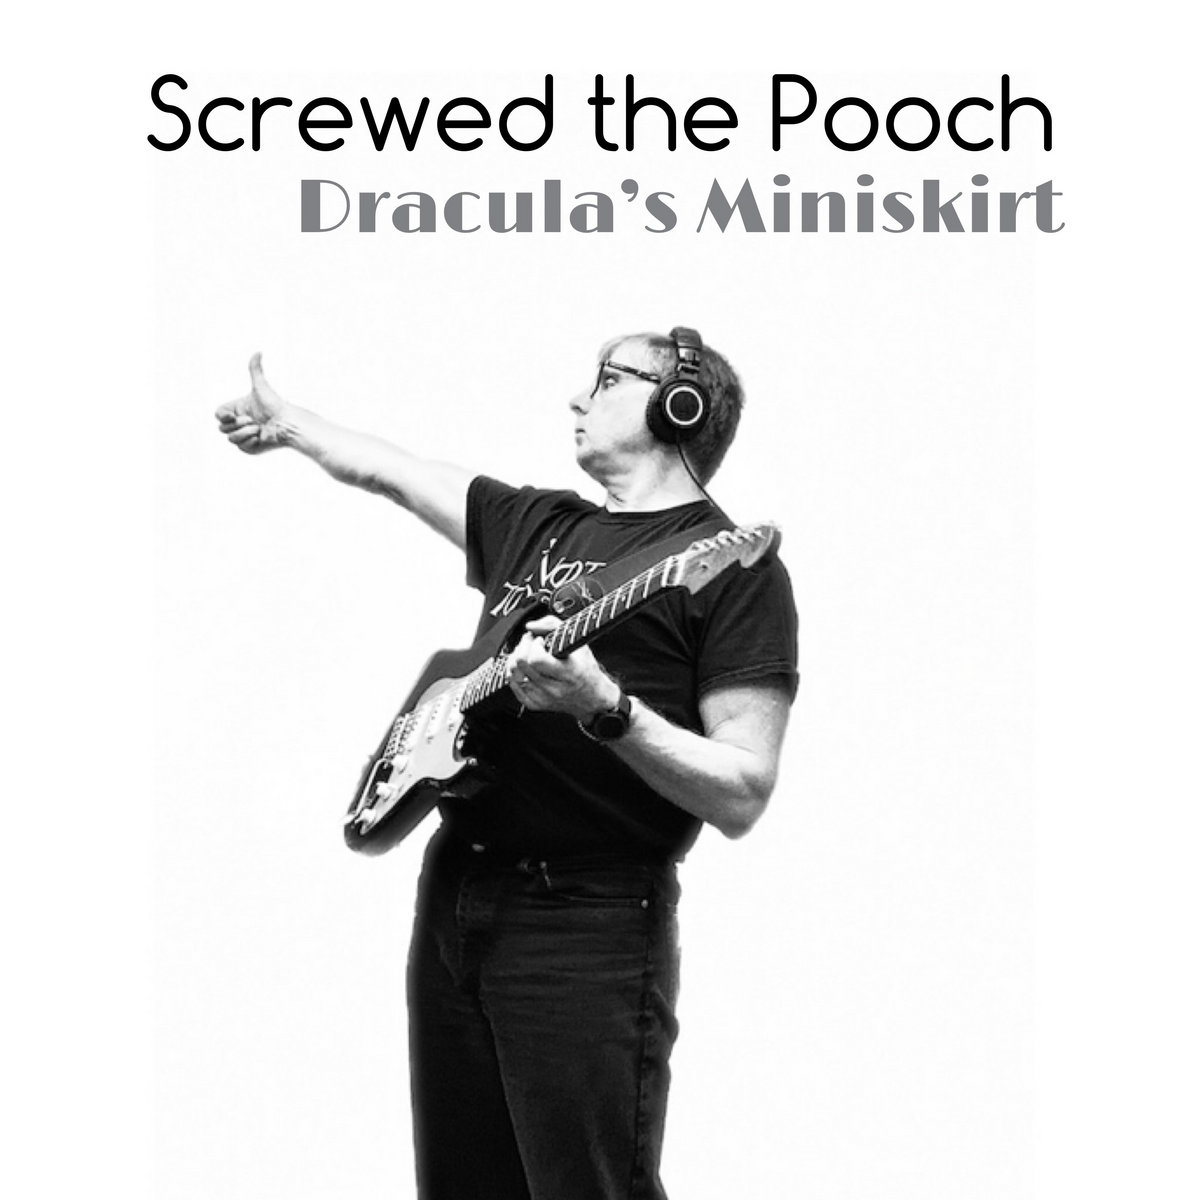 Screwed the Pooch by Dracula's Miniskirt